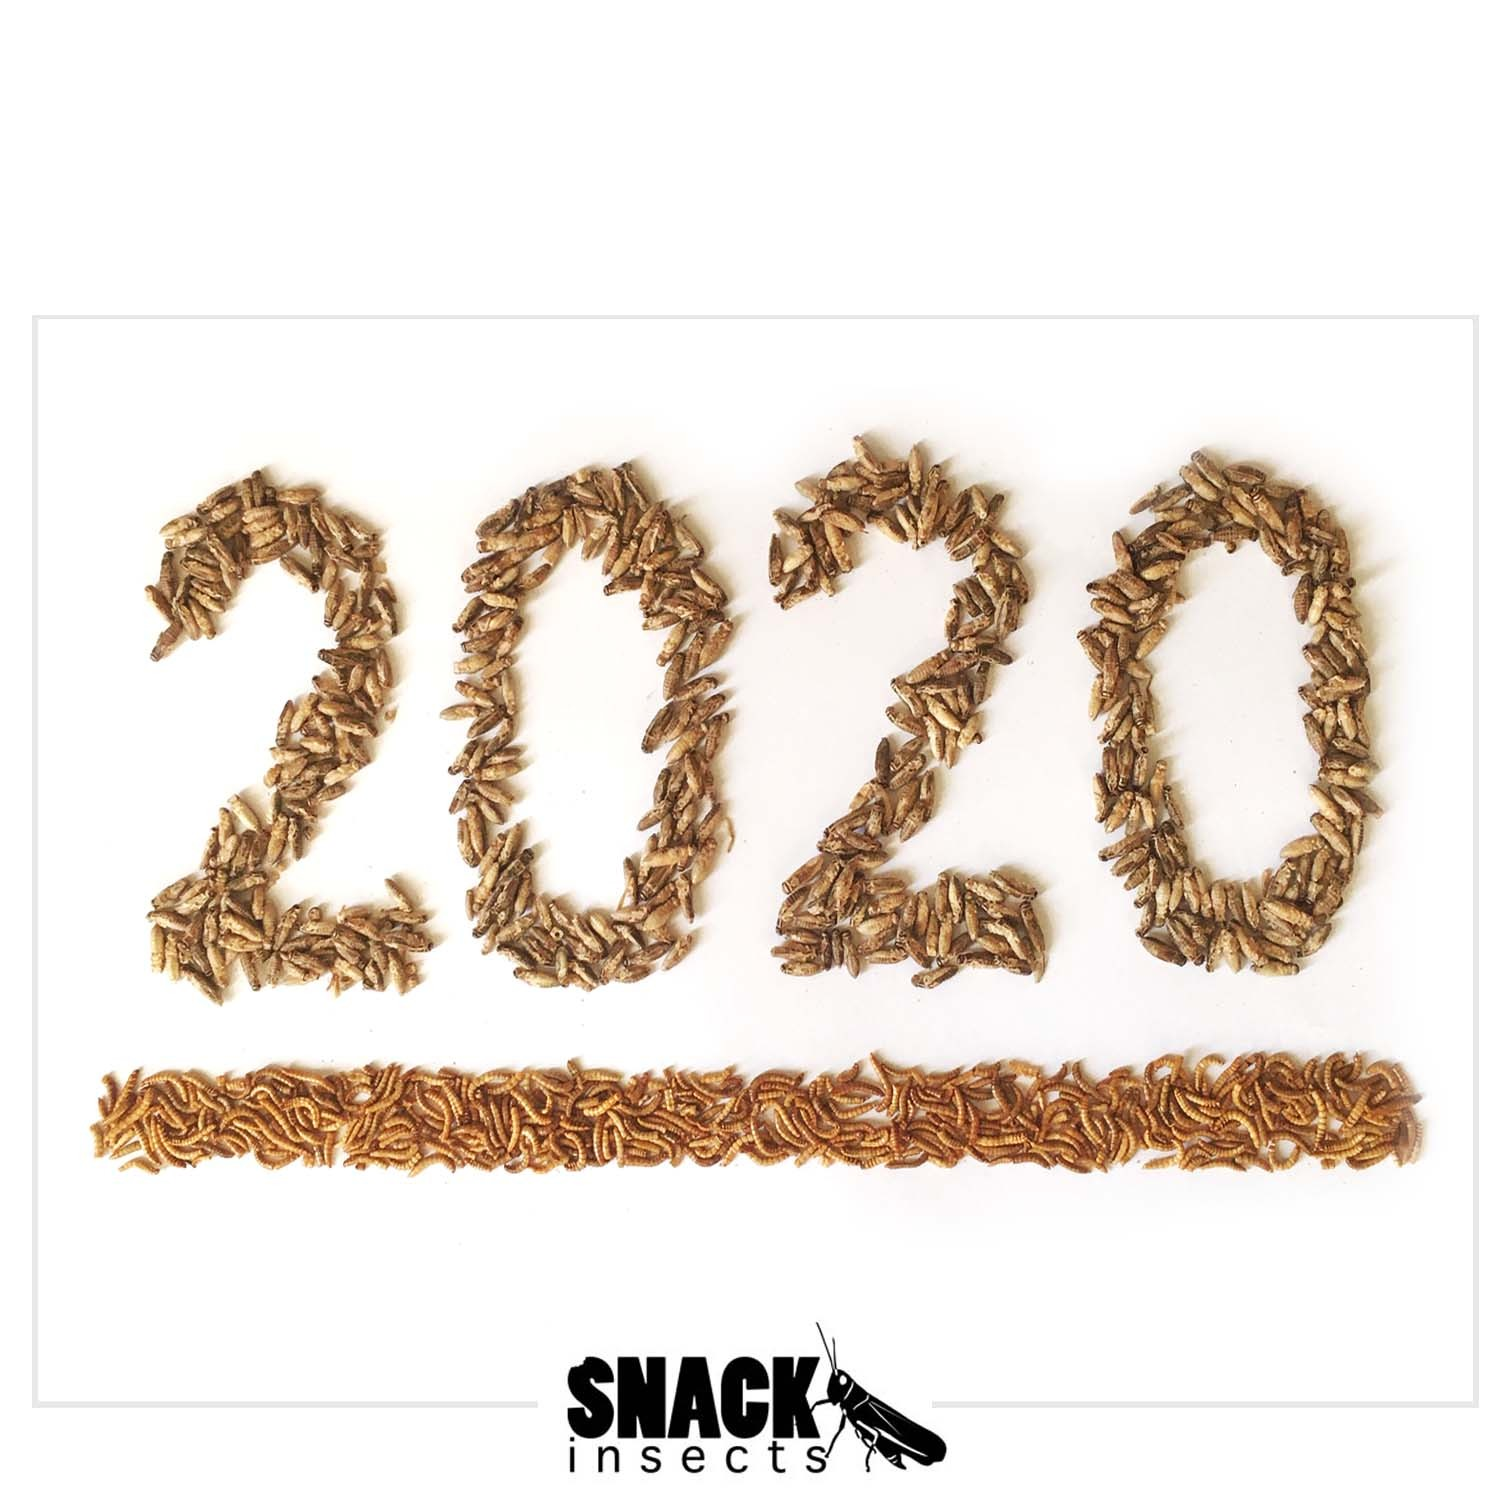 2020_Snack-Insects